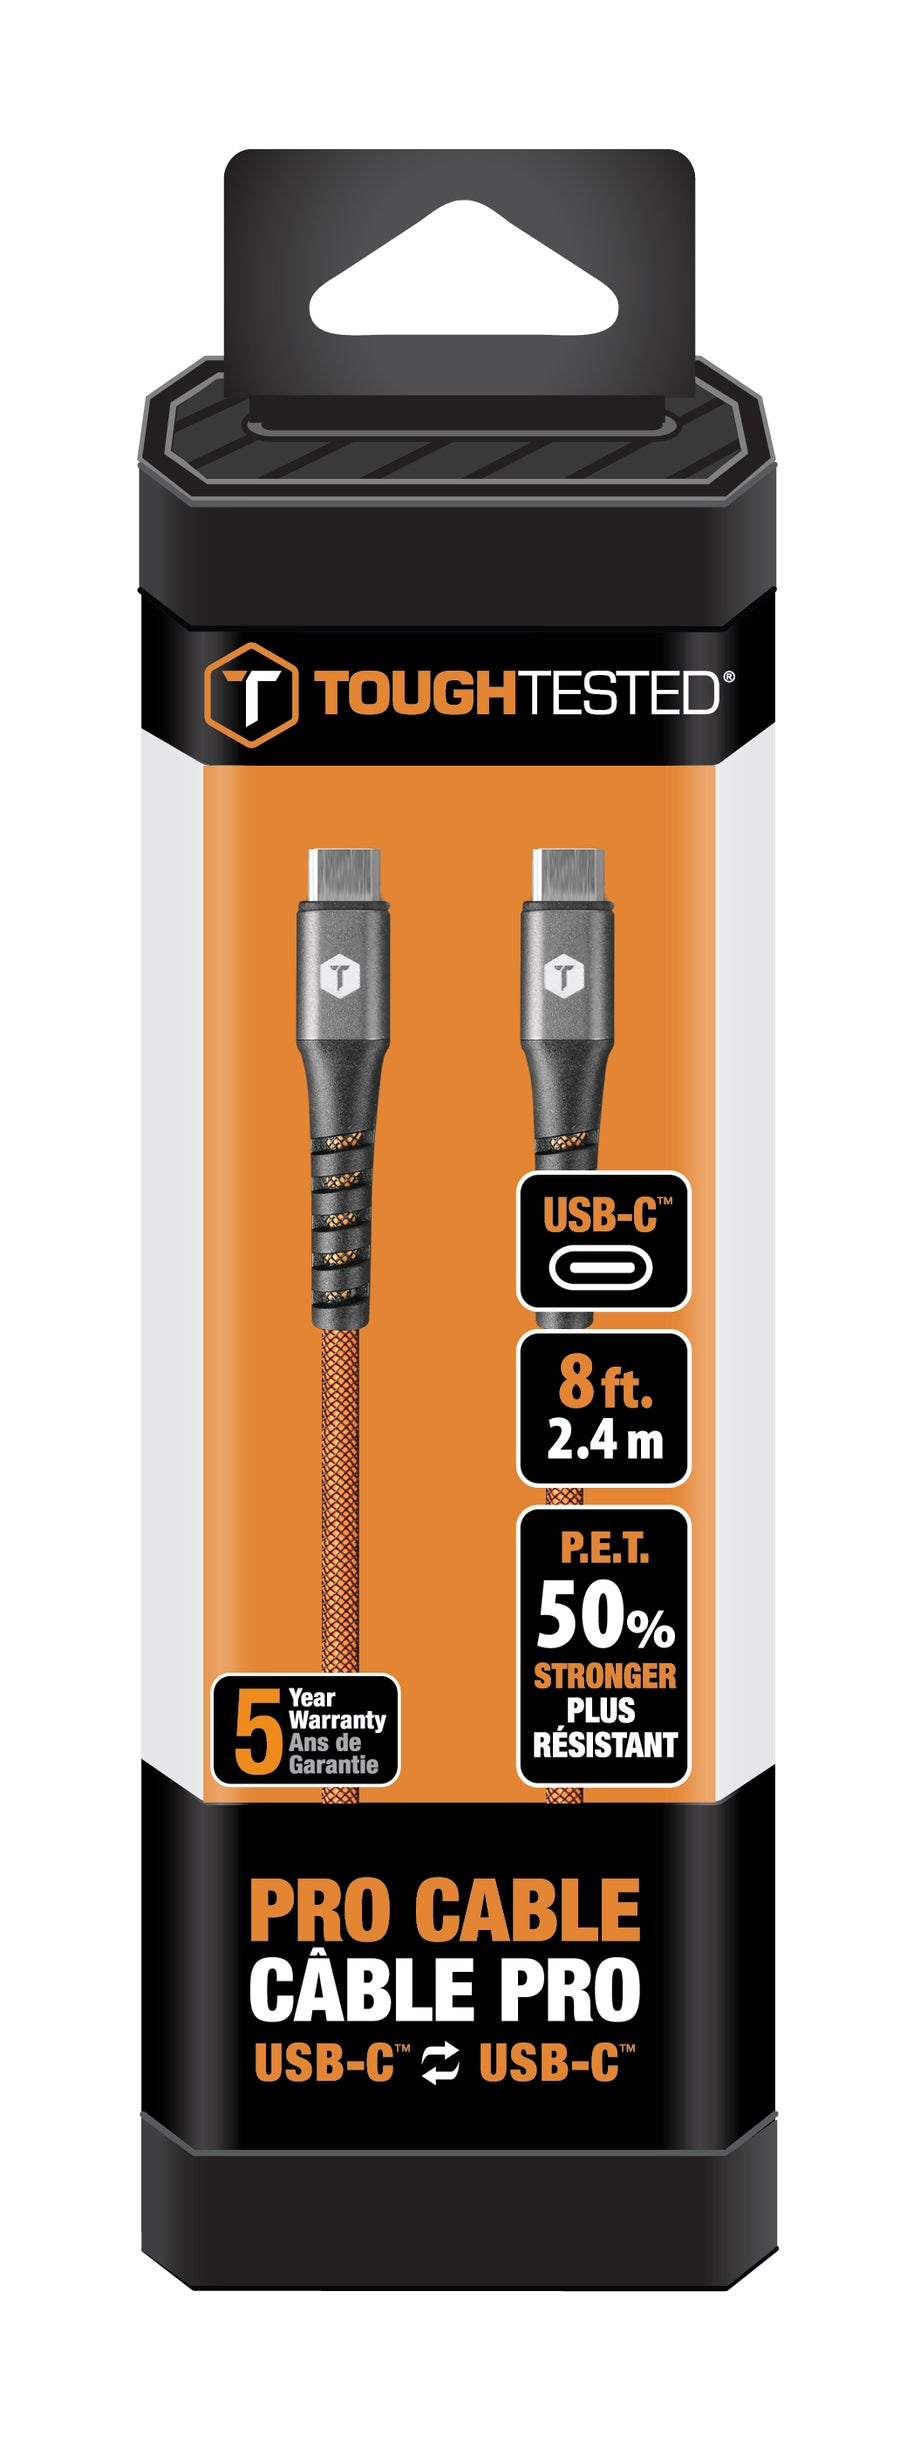 8 Ft. PRO Armor Weave Cable with Slim Tip with USB-C to USB-C Connector